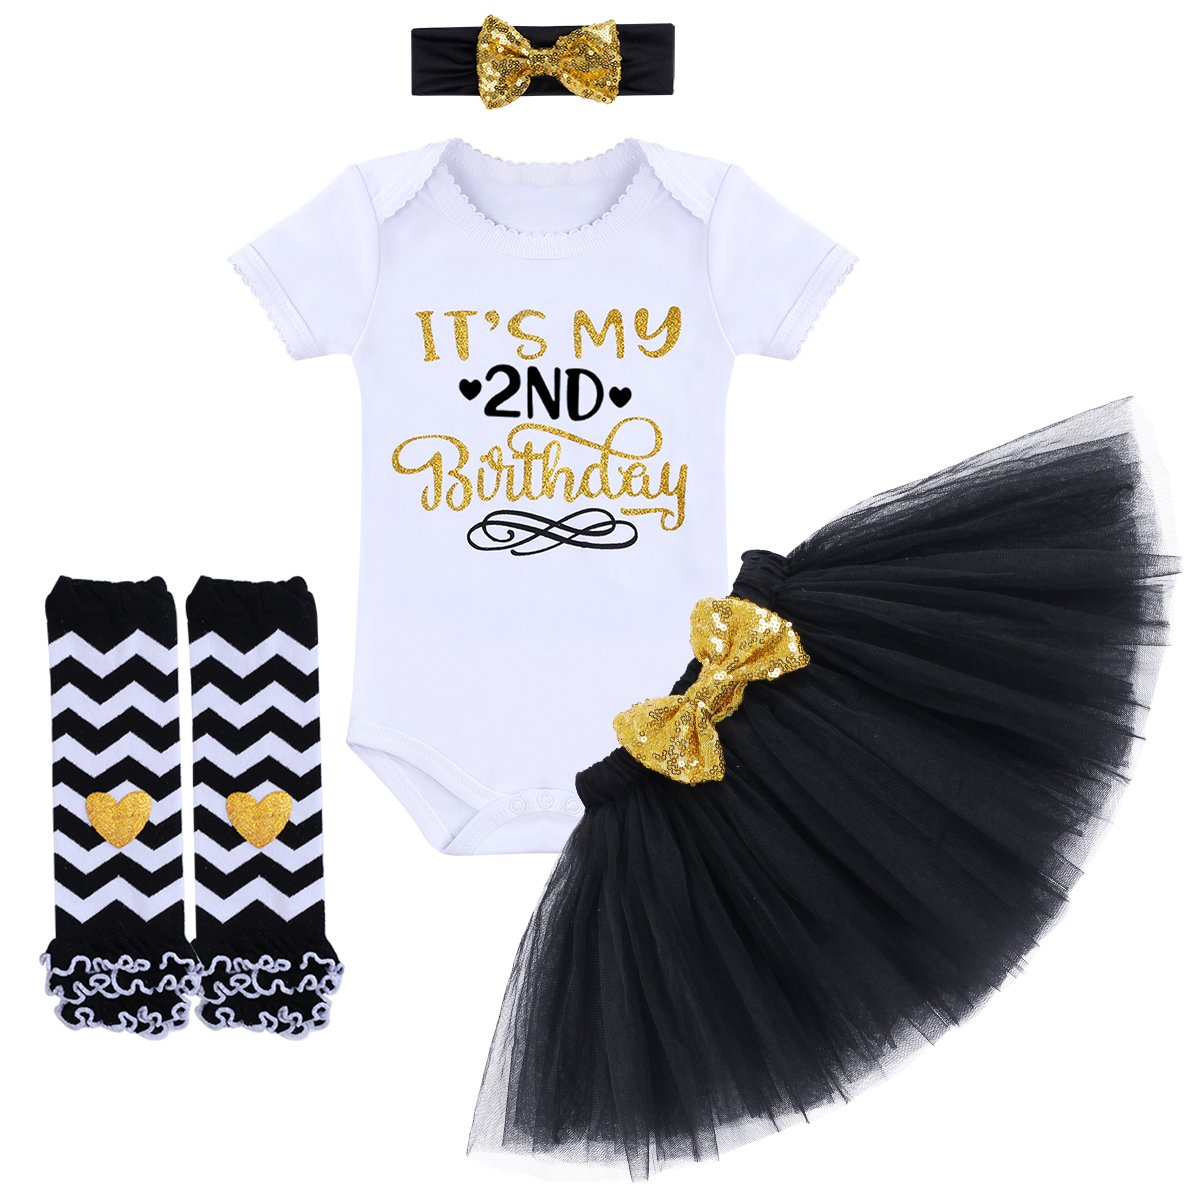 af61576a7ca91 Baby Girls It's My 1st/ 2nd Birthday Cake Smash Outfit Romper Tutu Skirt  Headband Leg Warmers 4PCS Set Dress Clothes